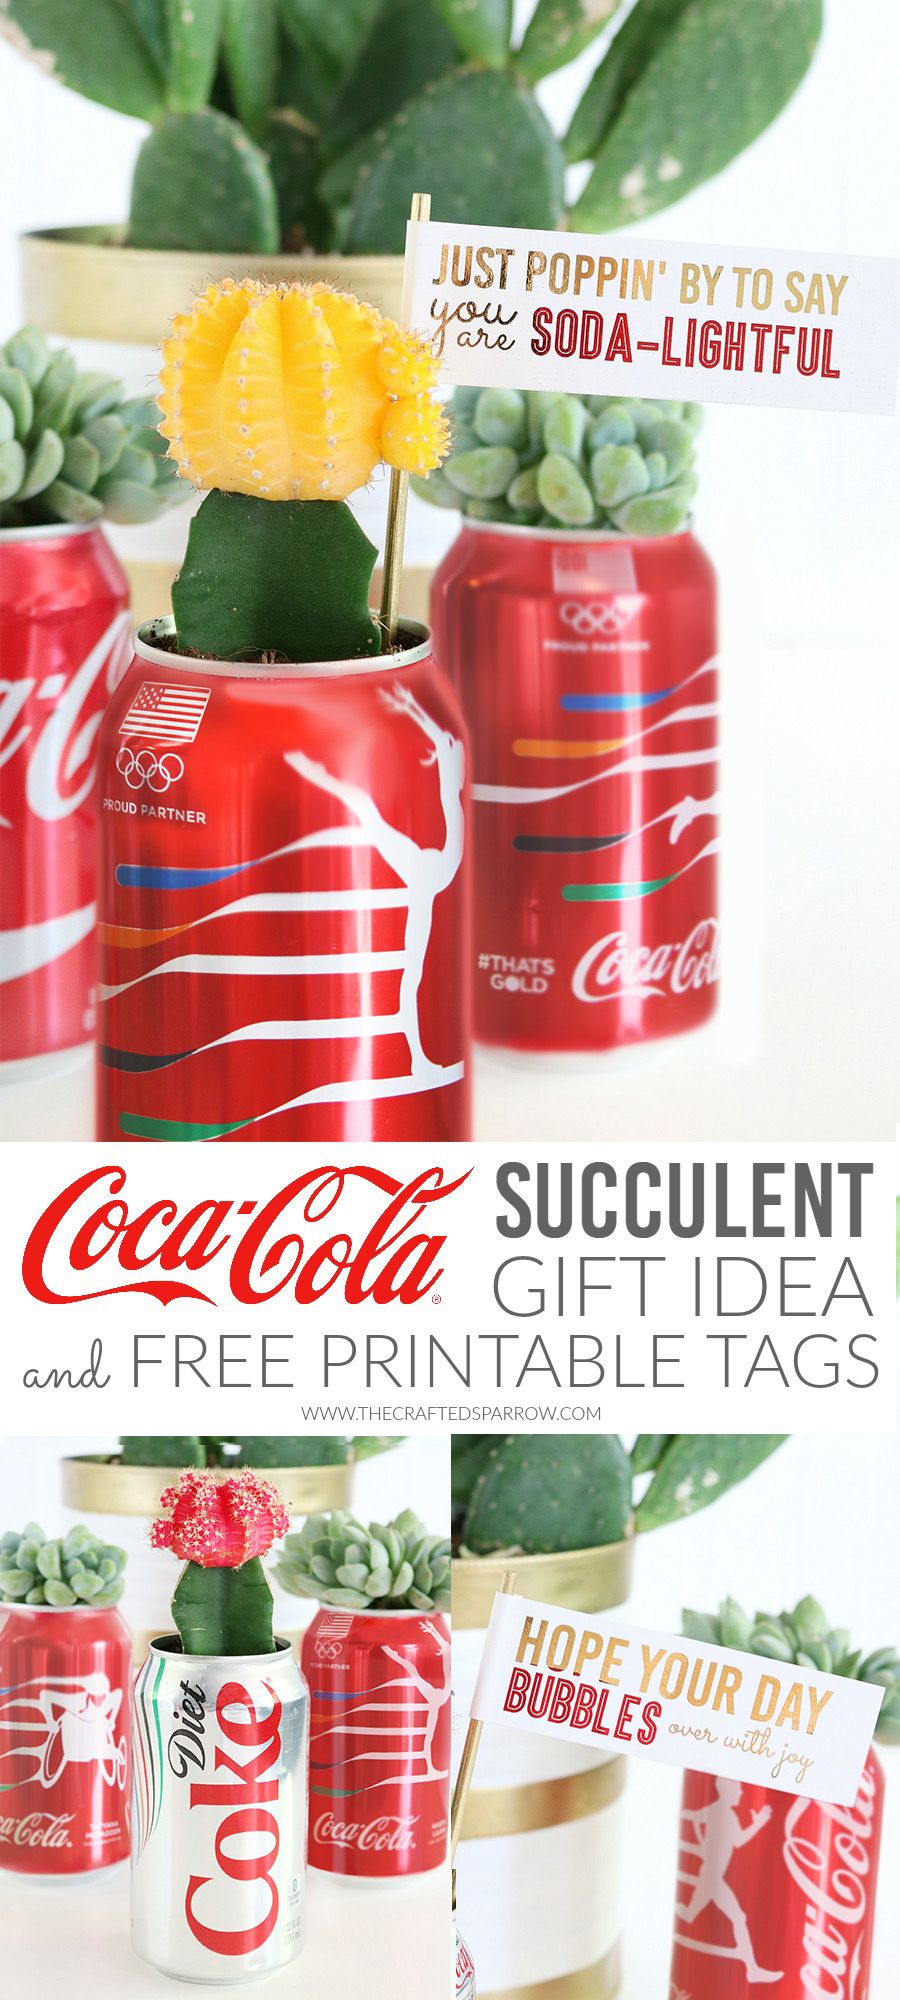 DIY Coca-Cola Succulent Gift Idea